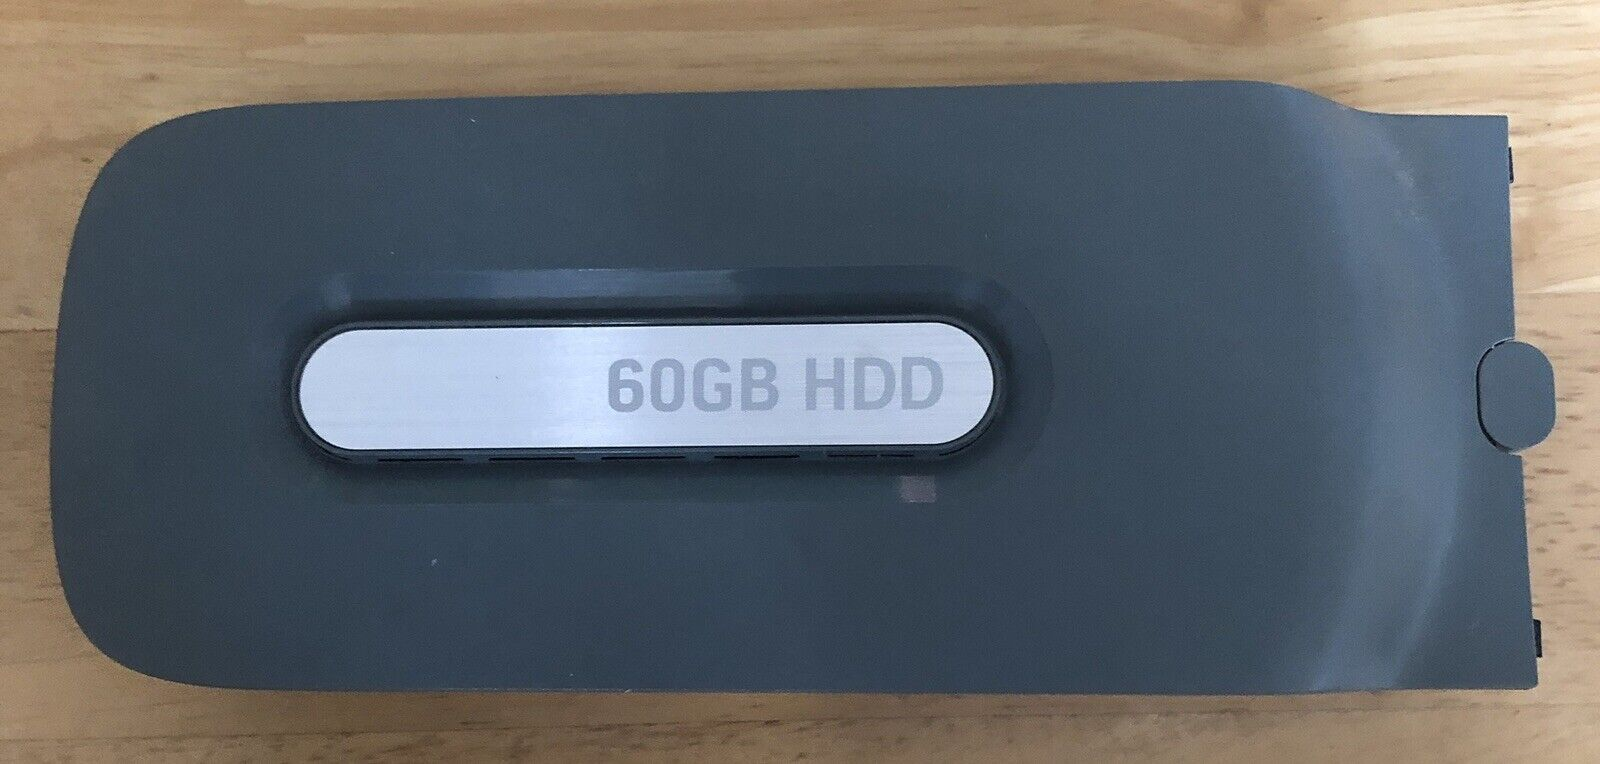 Official Microsoft Xbox 360 (60GB) External Hard Drive HDD - Formatted